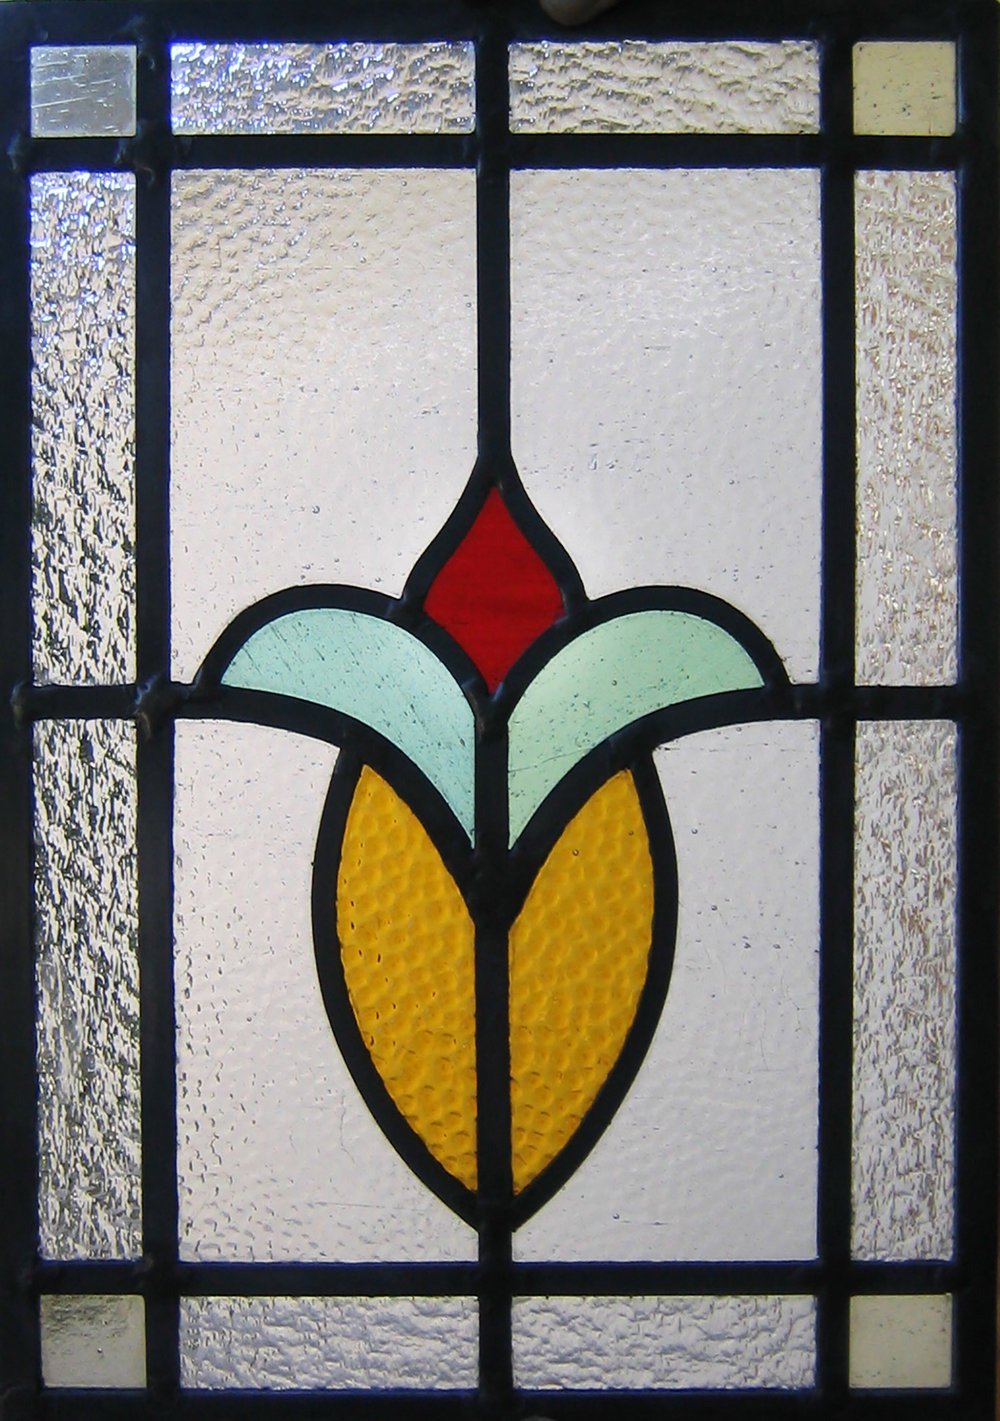 kokomo hammered glass granite clear texture flower floral craftsman leaded glass stained glass window palo alto atherton california san francisco san jose.jpg